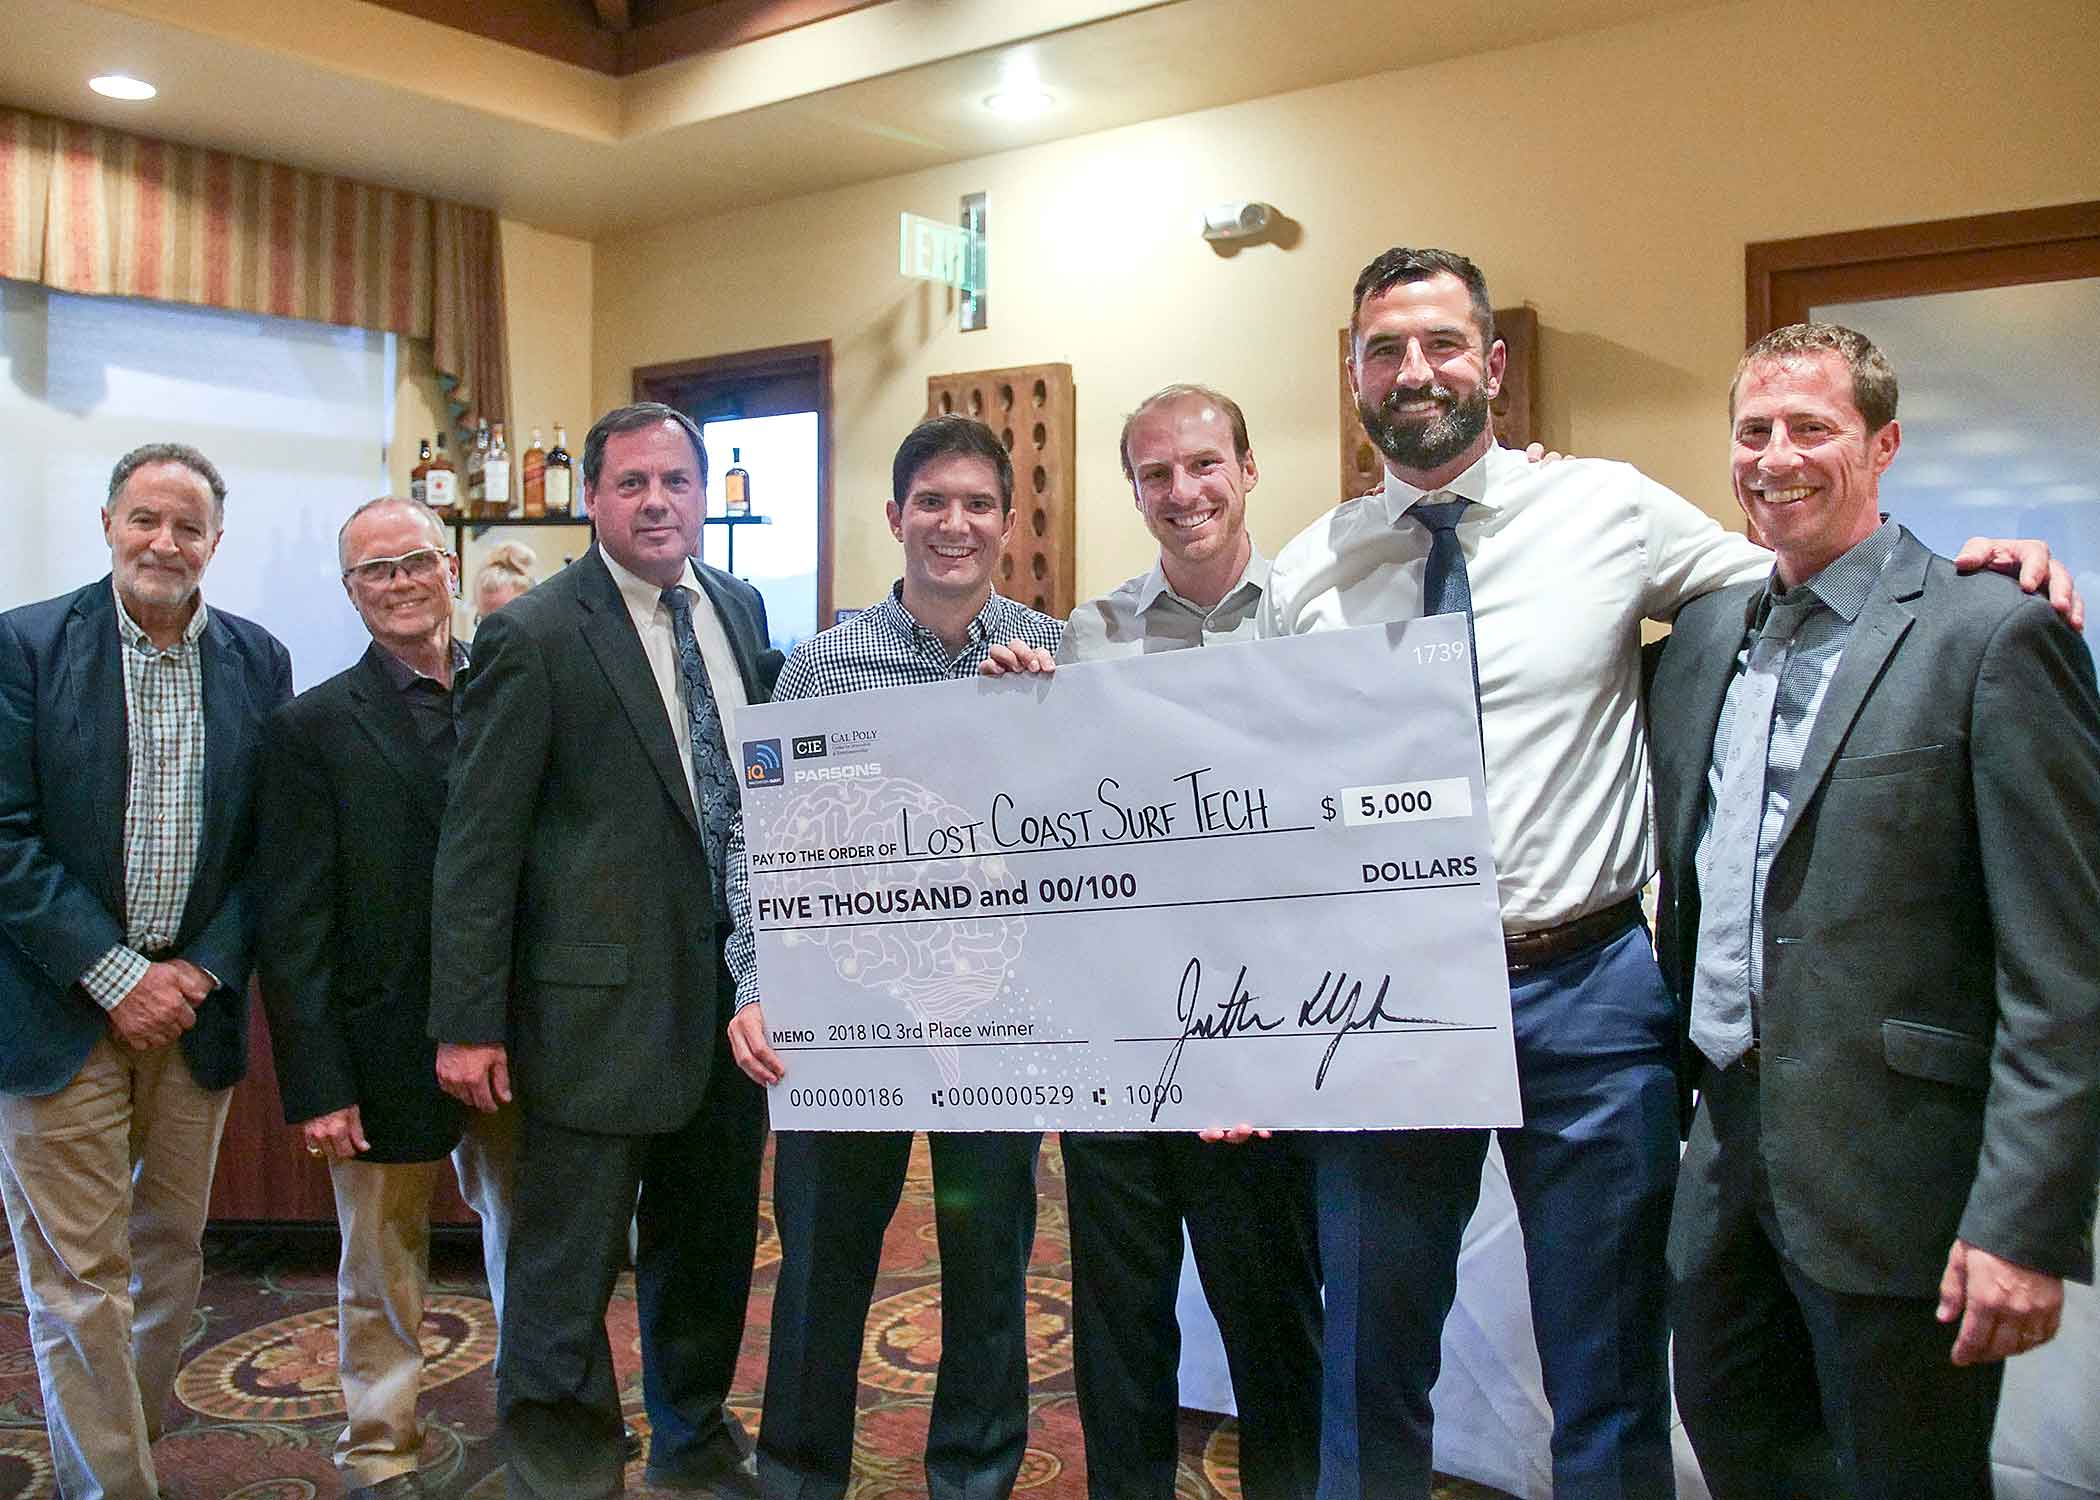 Members of Lost Coast Surf Tech, which designed what they call the world's best performing surfboard fin with smart tracking features integrated into a comprehensive mobile app, stand with judges after receiving the 2018 Innovation Quest's $5,000 third-place award on April 28 at the San Luis Obispo Country Club. The competition was sponsored by Cal Poly's Center for Innovation and Entrepreneurship.